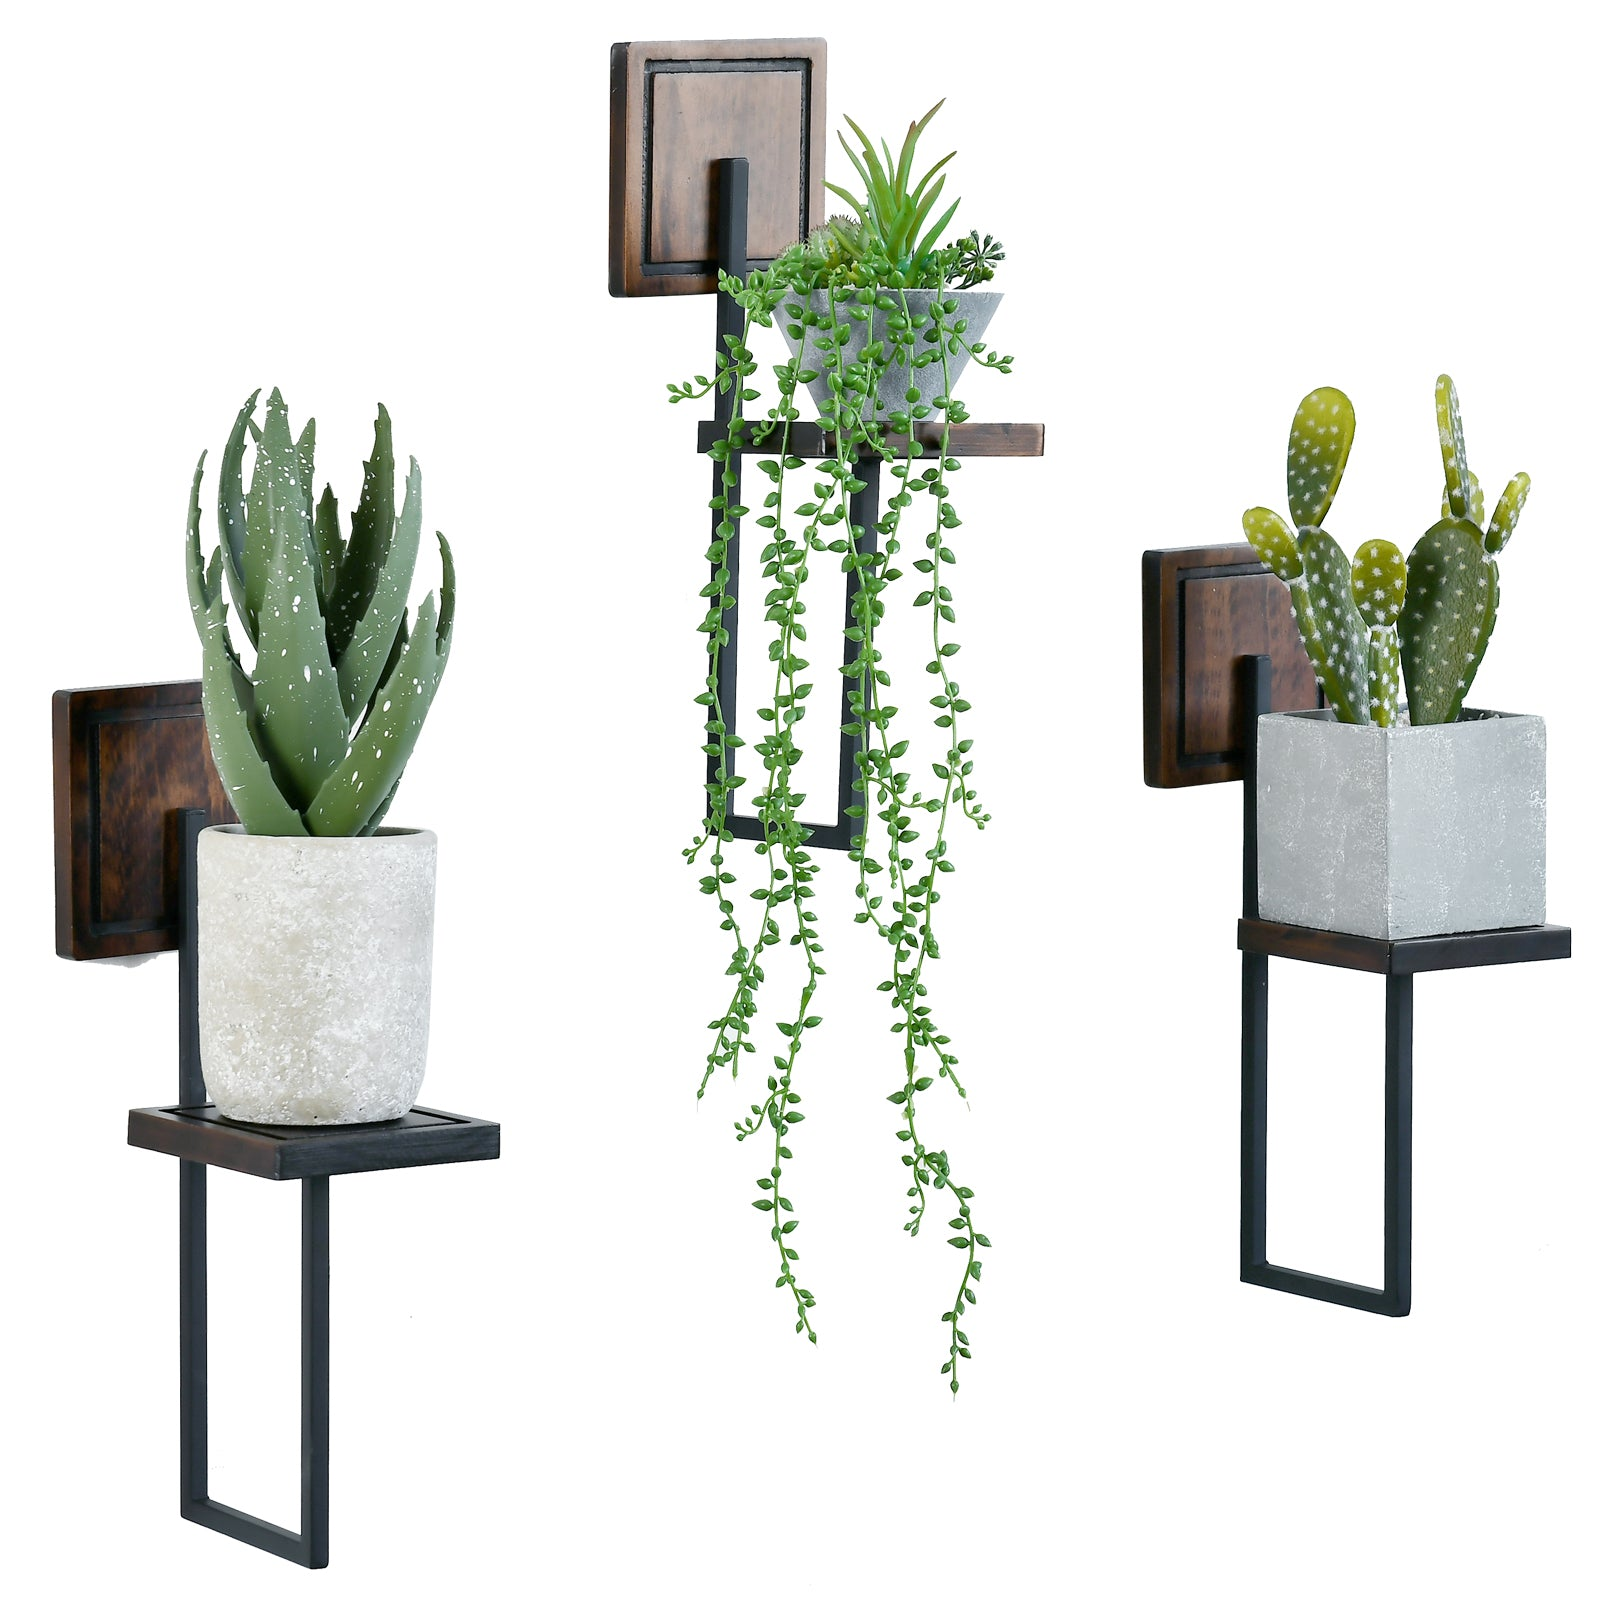 Yukon Rustic Wood Wall Plant Shelves Wall Plant Flower Pot Holder  Sconce/candle Holder Set Of 3